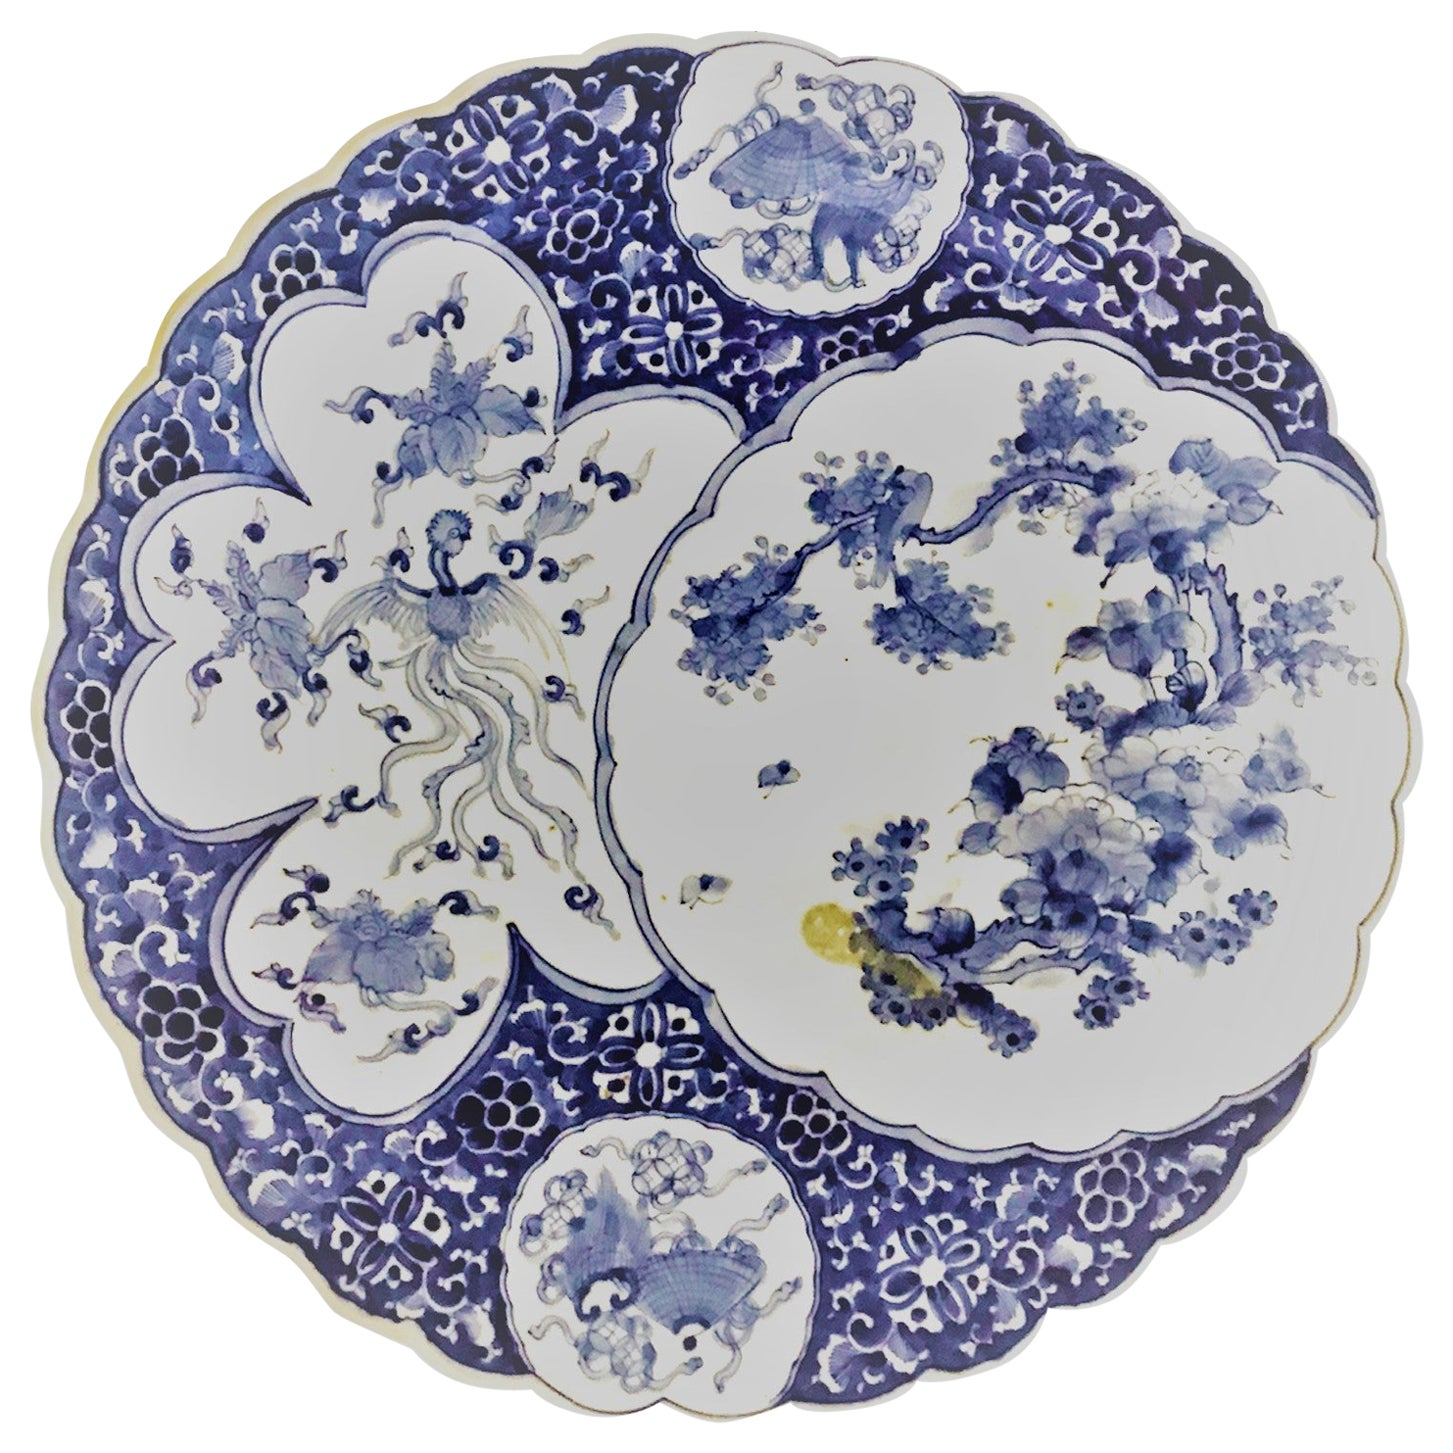 Japanese Meiji Blue and White Scalloped Charger with Fans, Phoenix and Birds